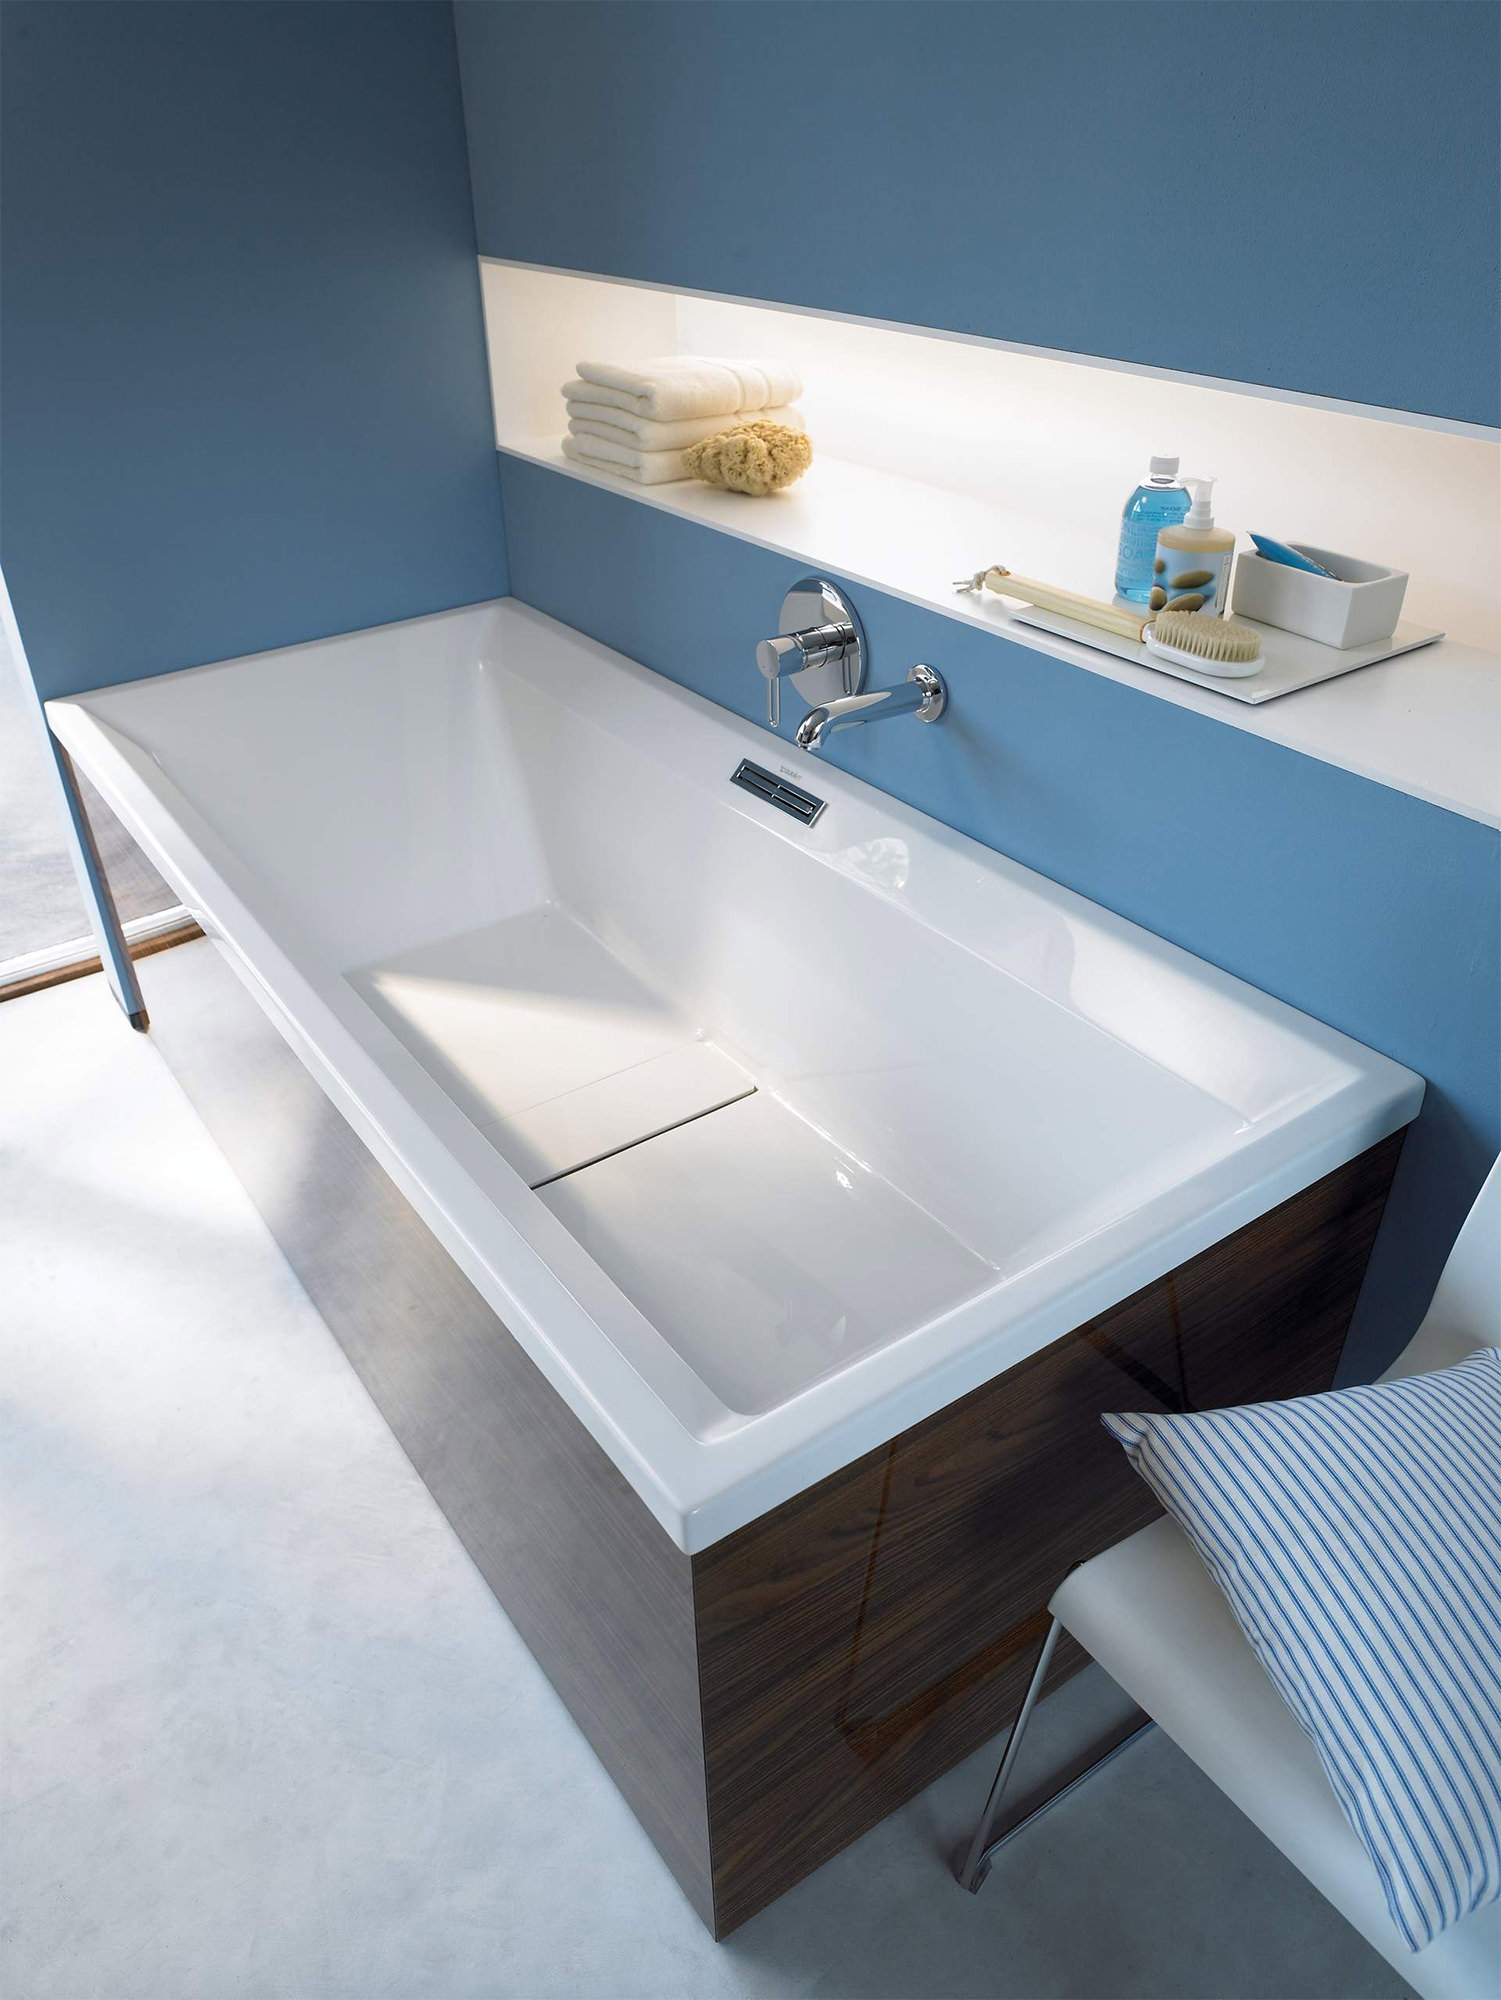 compact kitchens how much does a kitchen island cost duravit 2nd floor built-in 1900 x 900mm bath   700160000000000